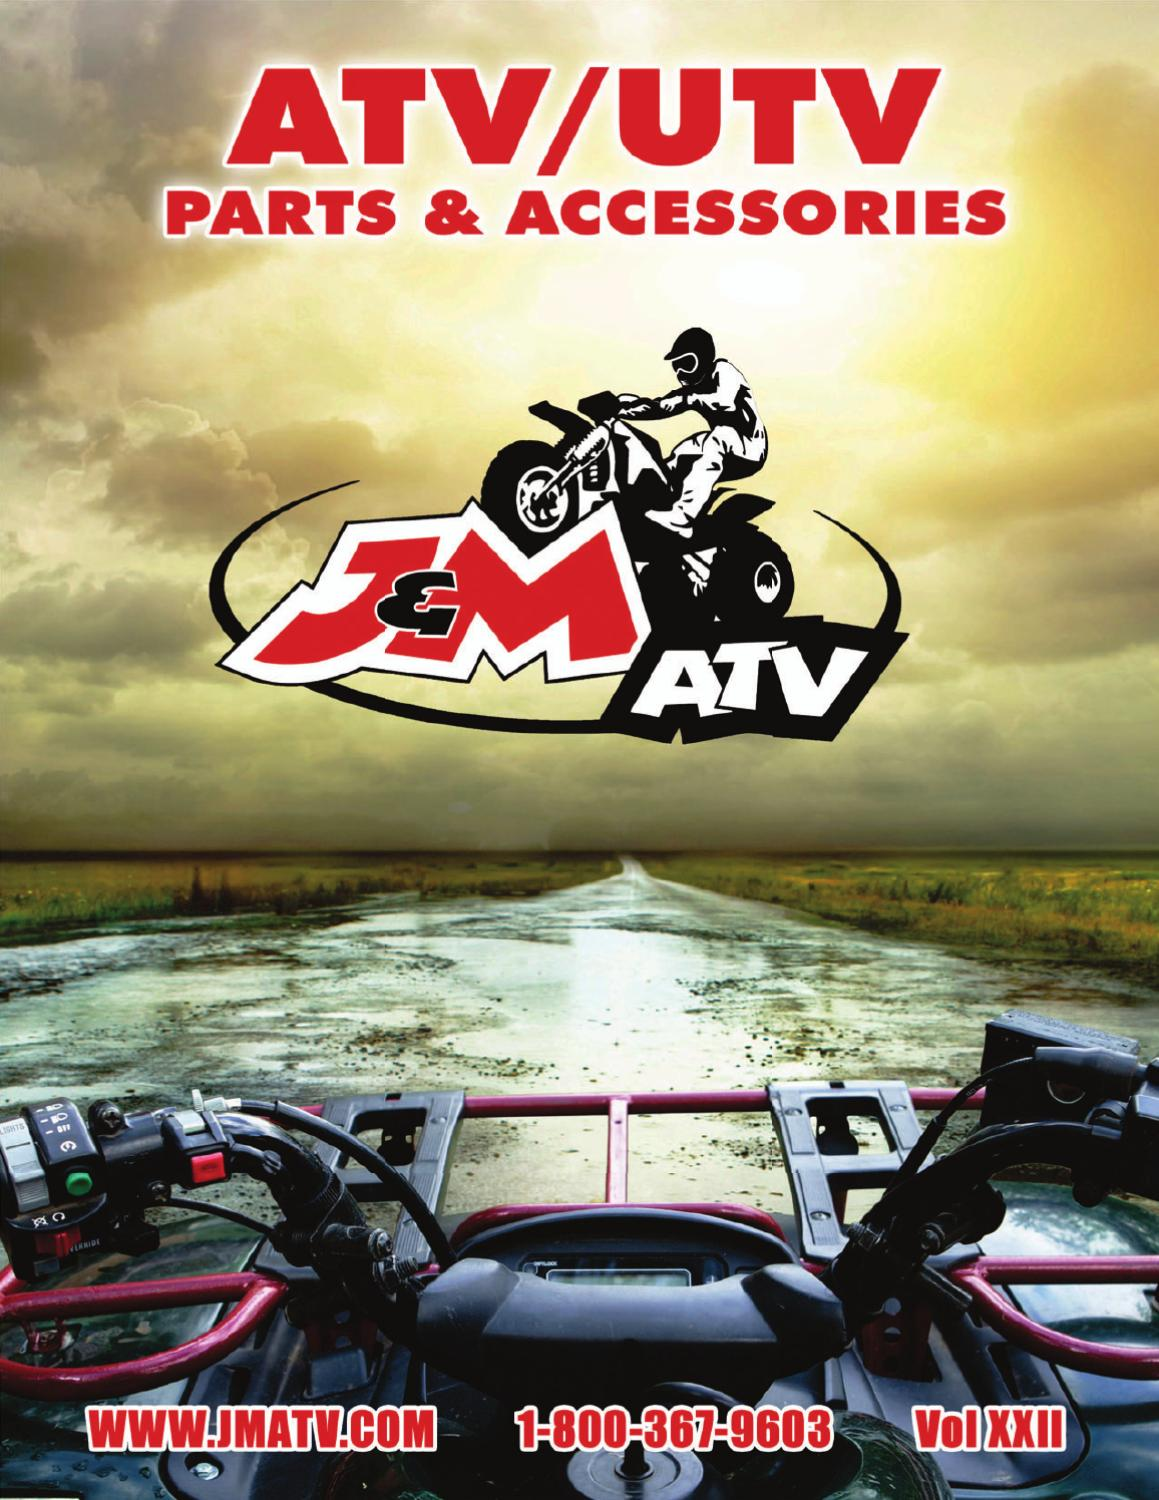 ATV Parts & Accessories - Vol XXII by J&M ATV Supply - issuu